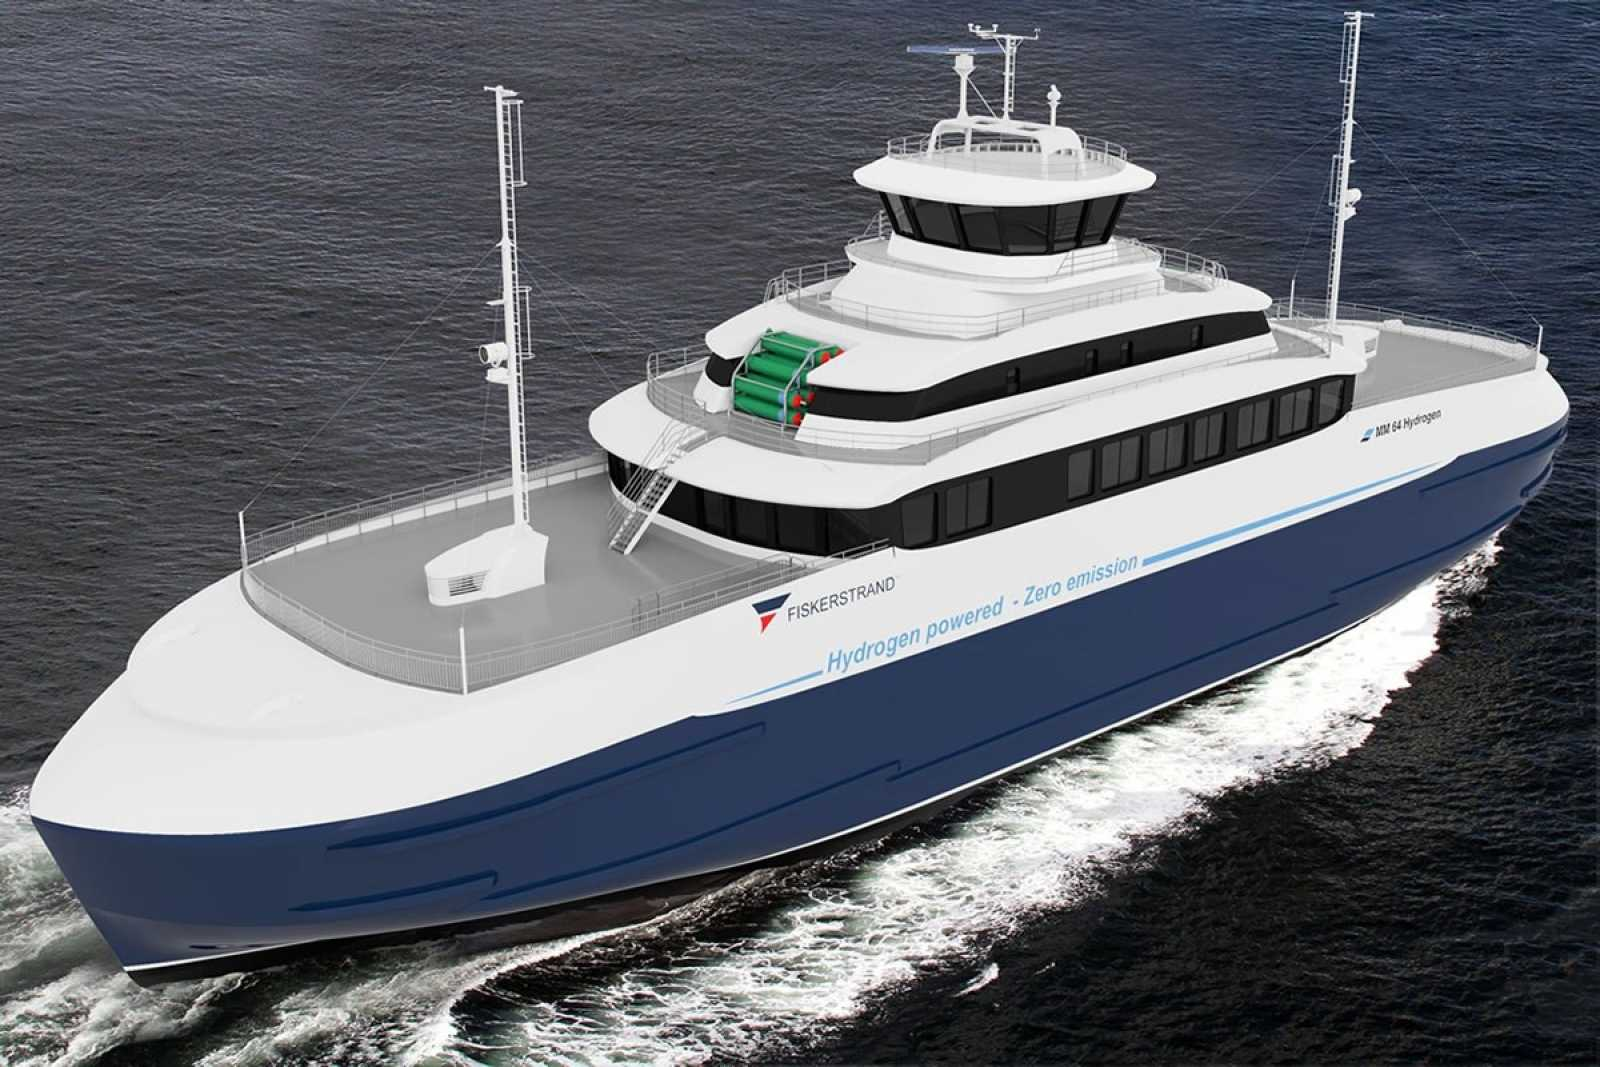 Concept-sketch-of-a-hydrogen-hybrid-ferry.-Image-credit-Fiskerstrand-Holding